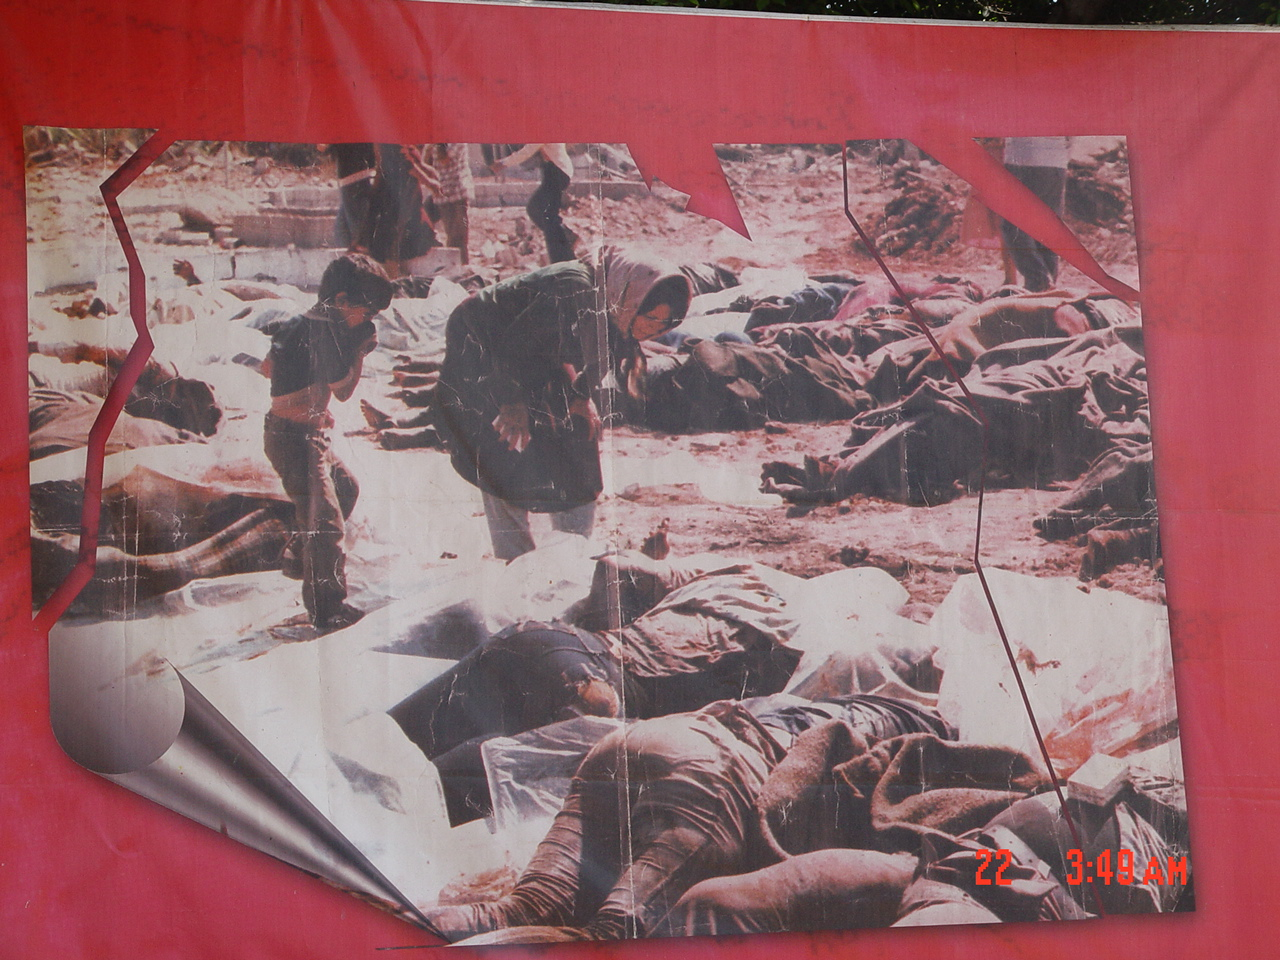 Shatila R.C. - مخيّم شاتيله : A large poster at Sabar & Shatila mass grave (#3)